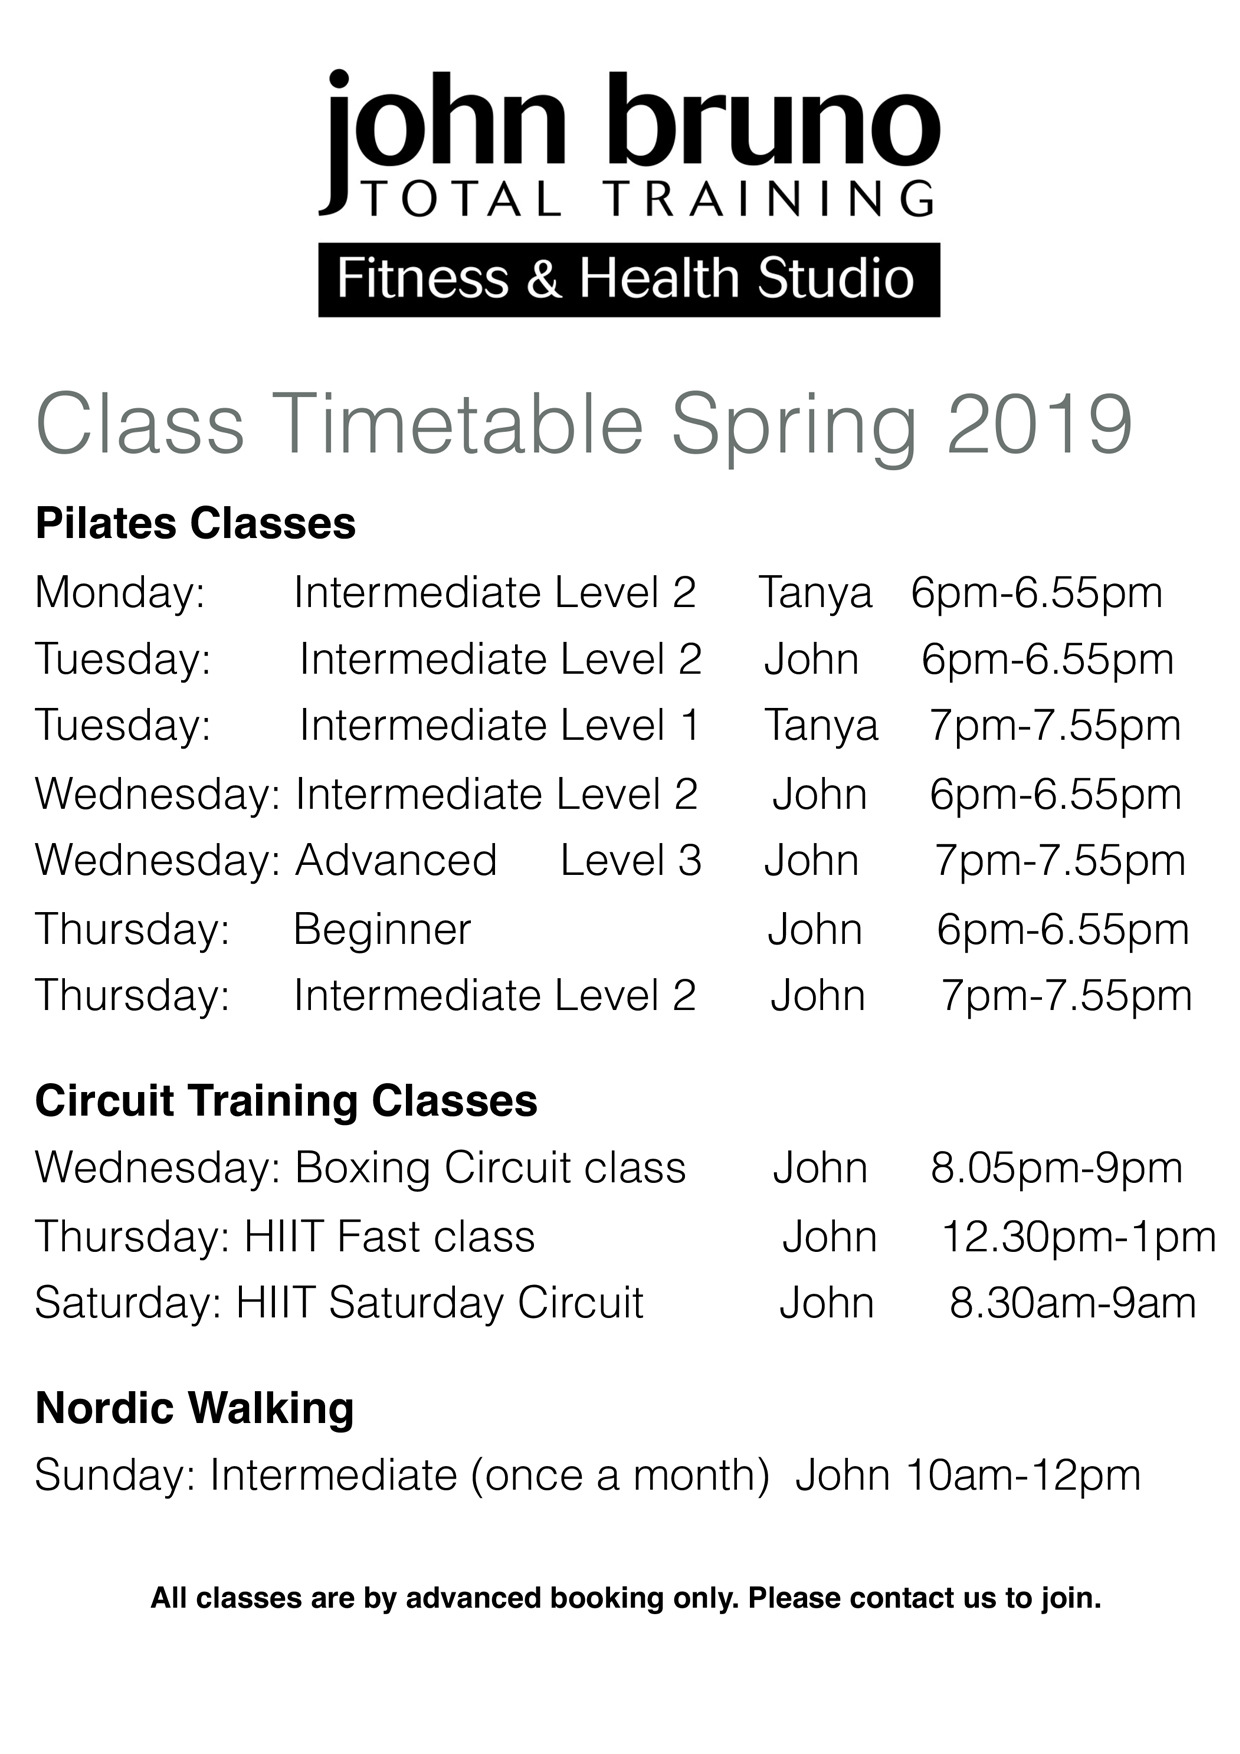 timetable perosnal training